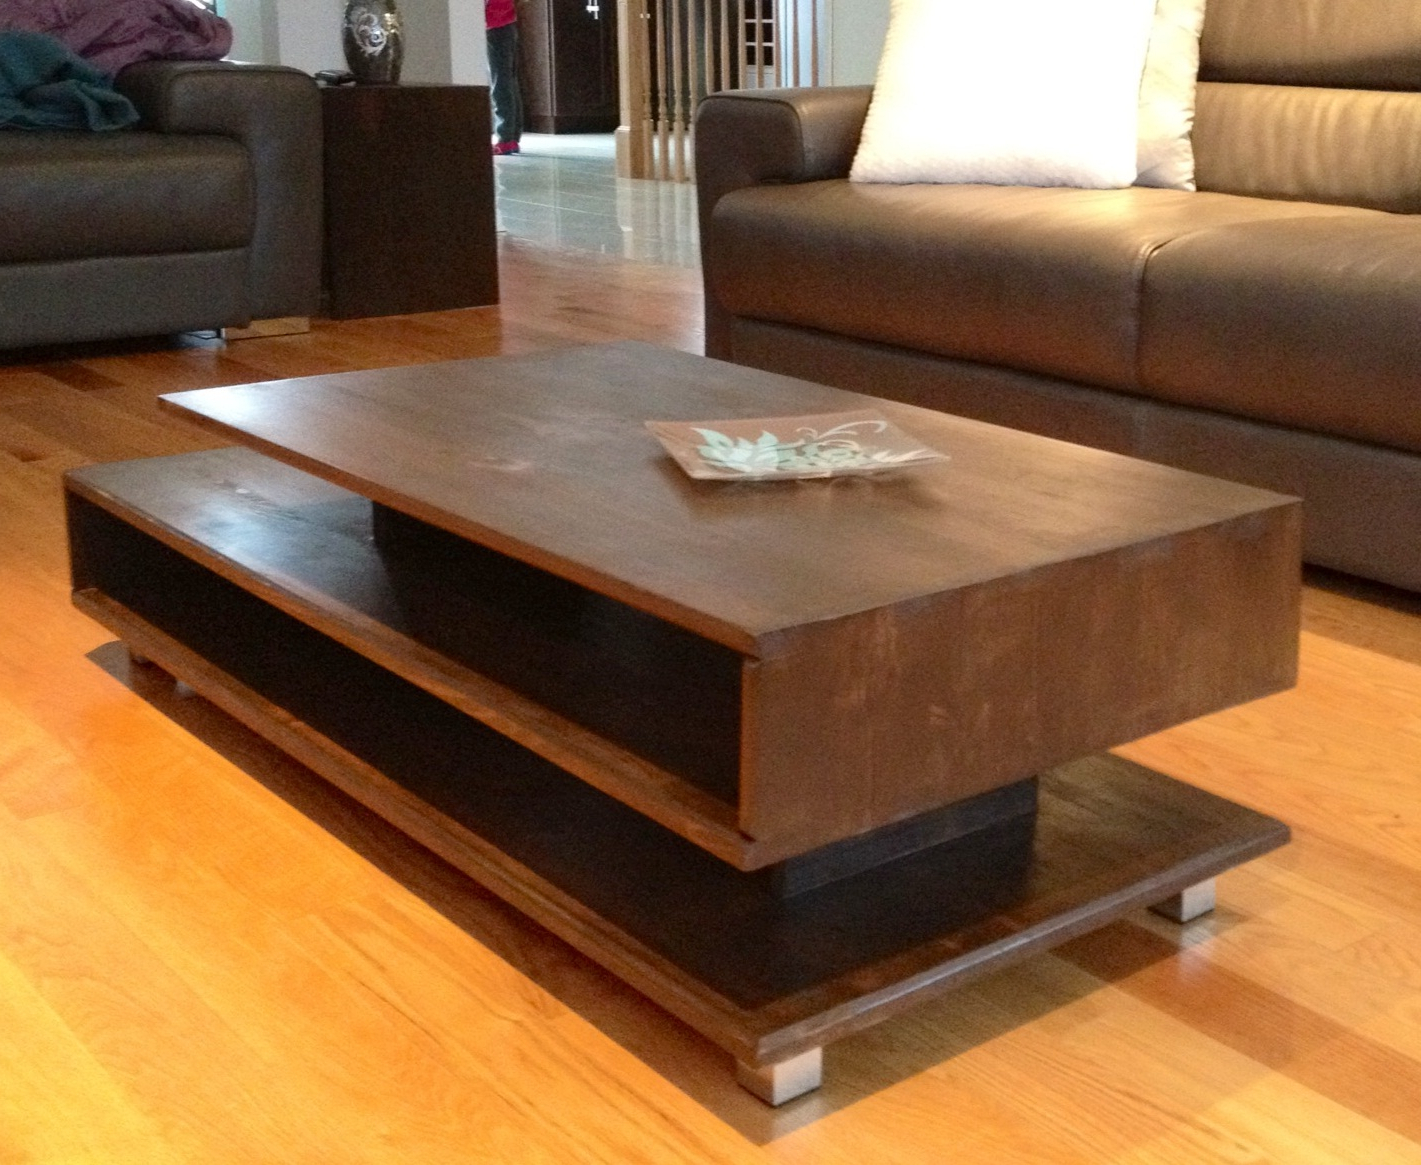 Favorite Modern Rustic Coffee Tables For Modern Rustic Coffee Table With Storage Space In Nice Living Room (View 6 of 20)